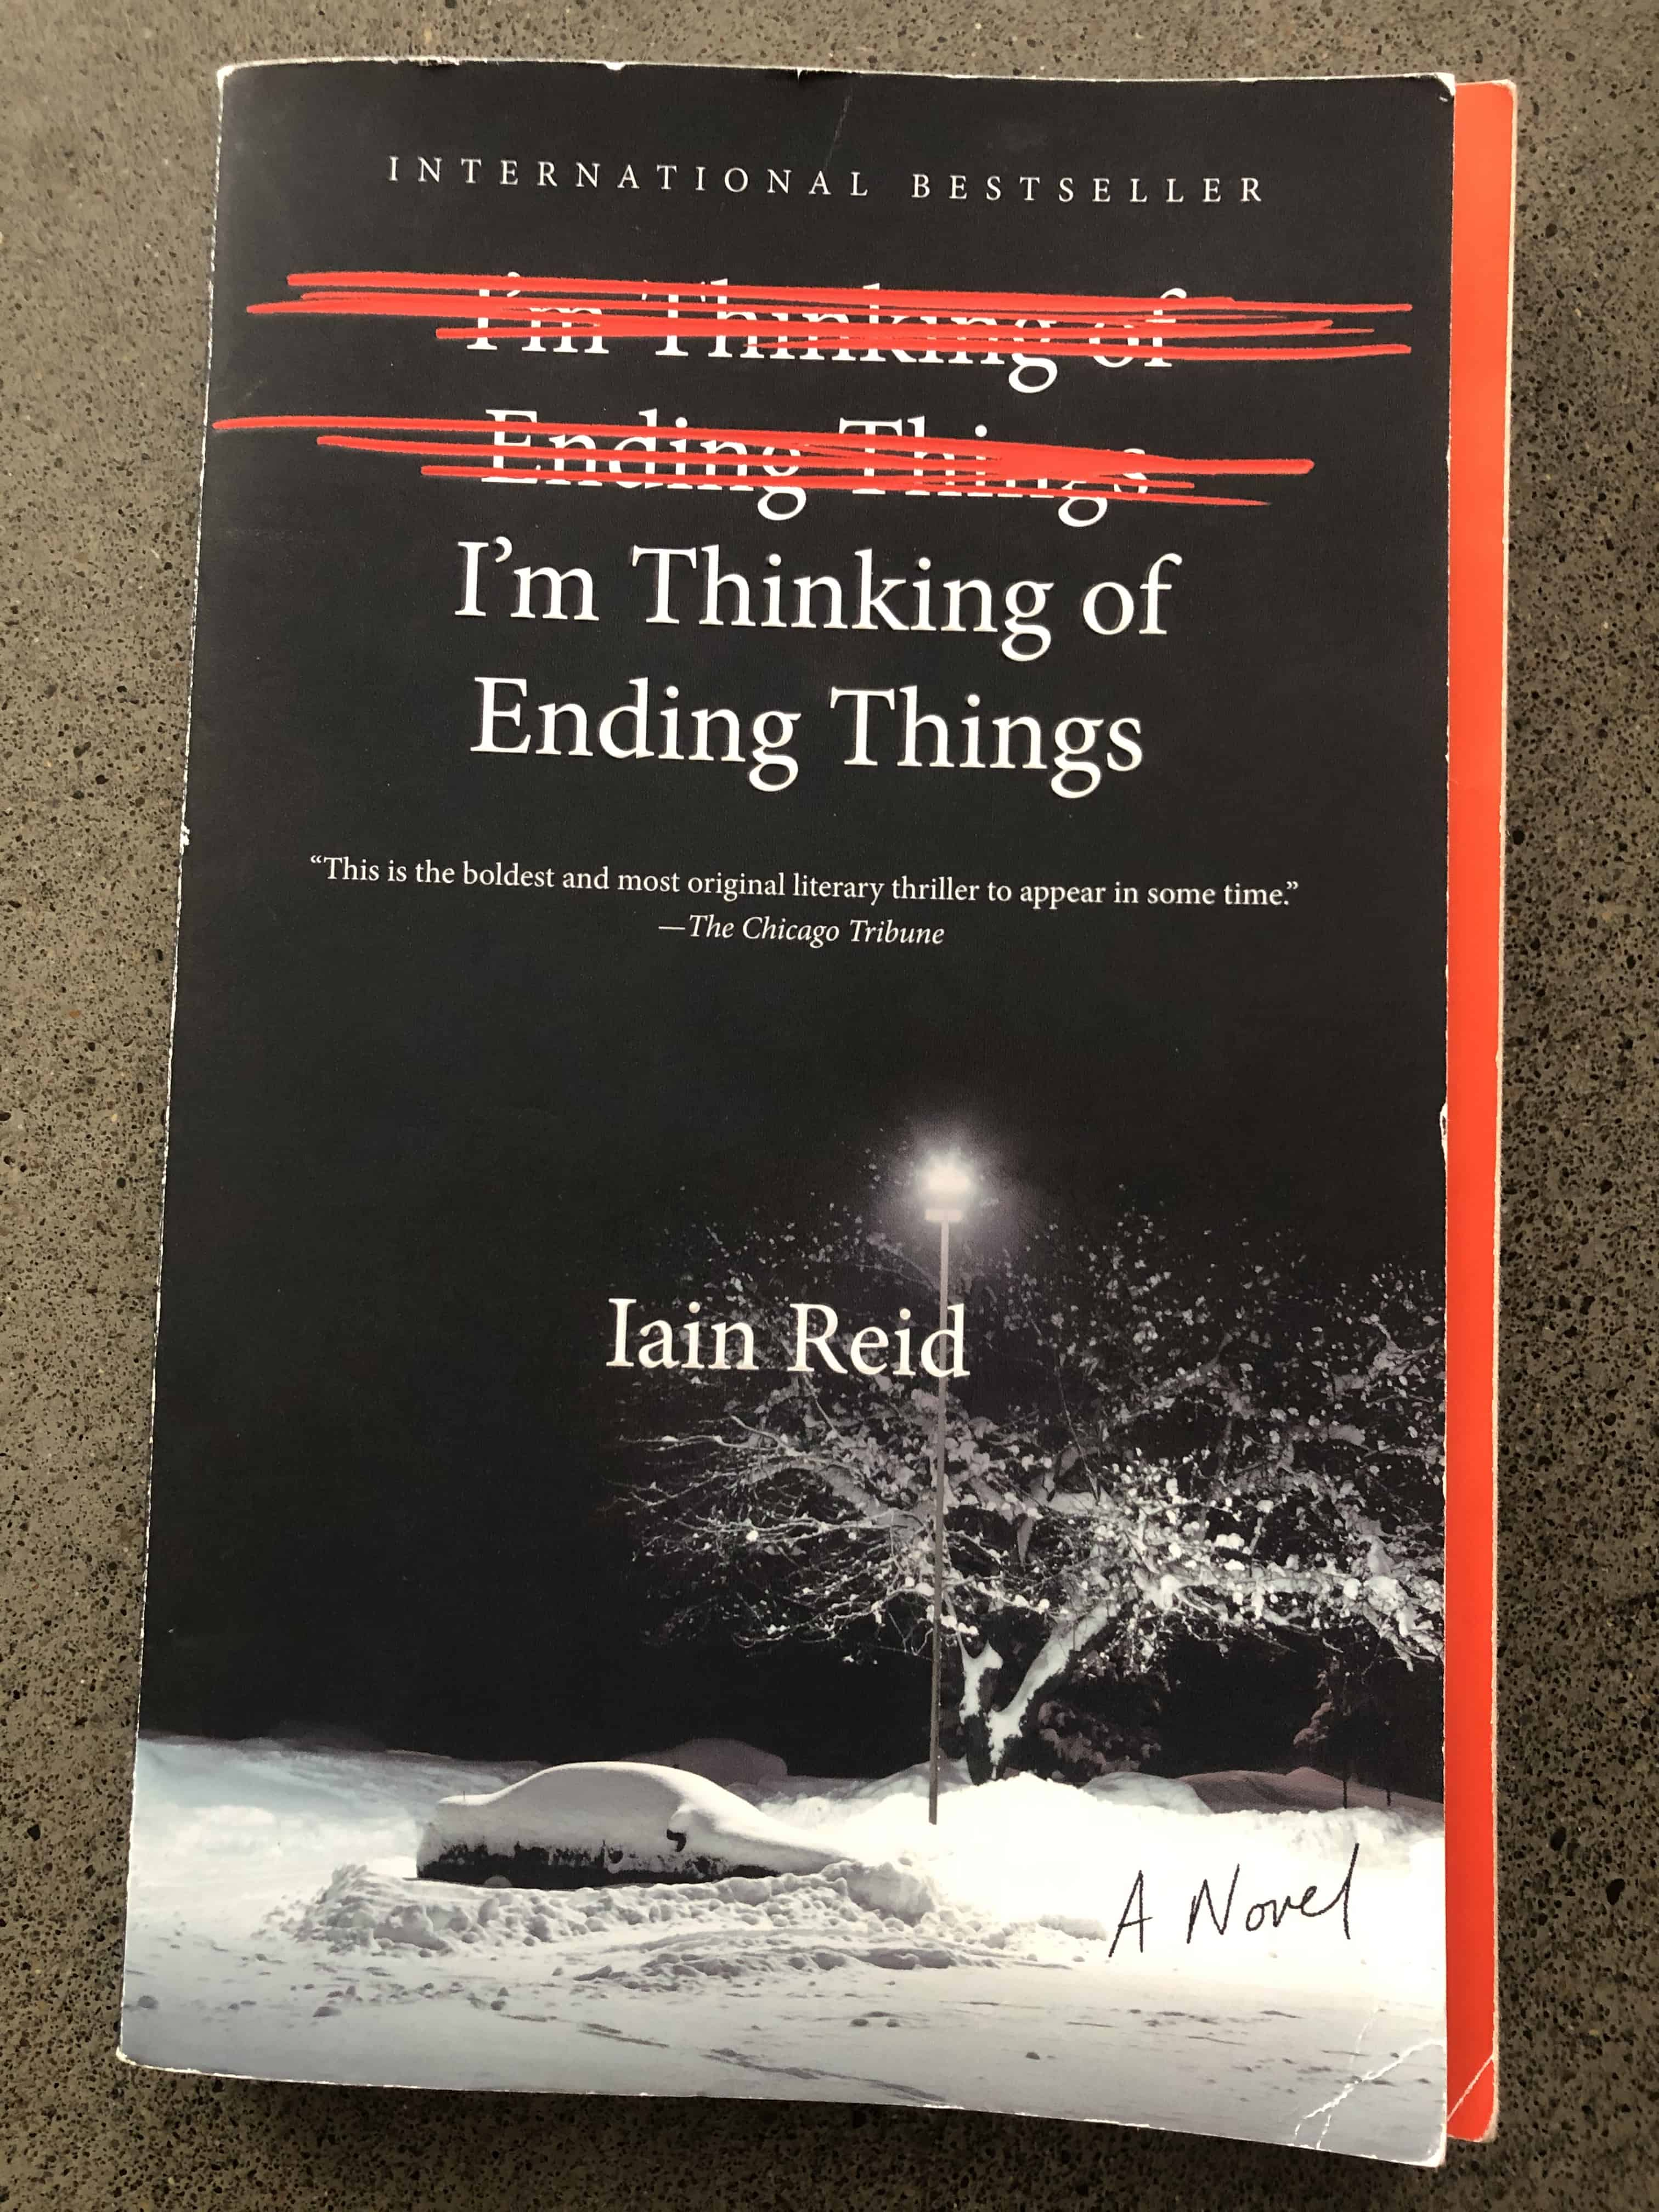 Mike's Book Report: I'm Thinking of Ending Things